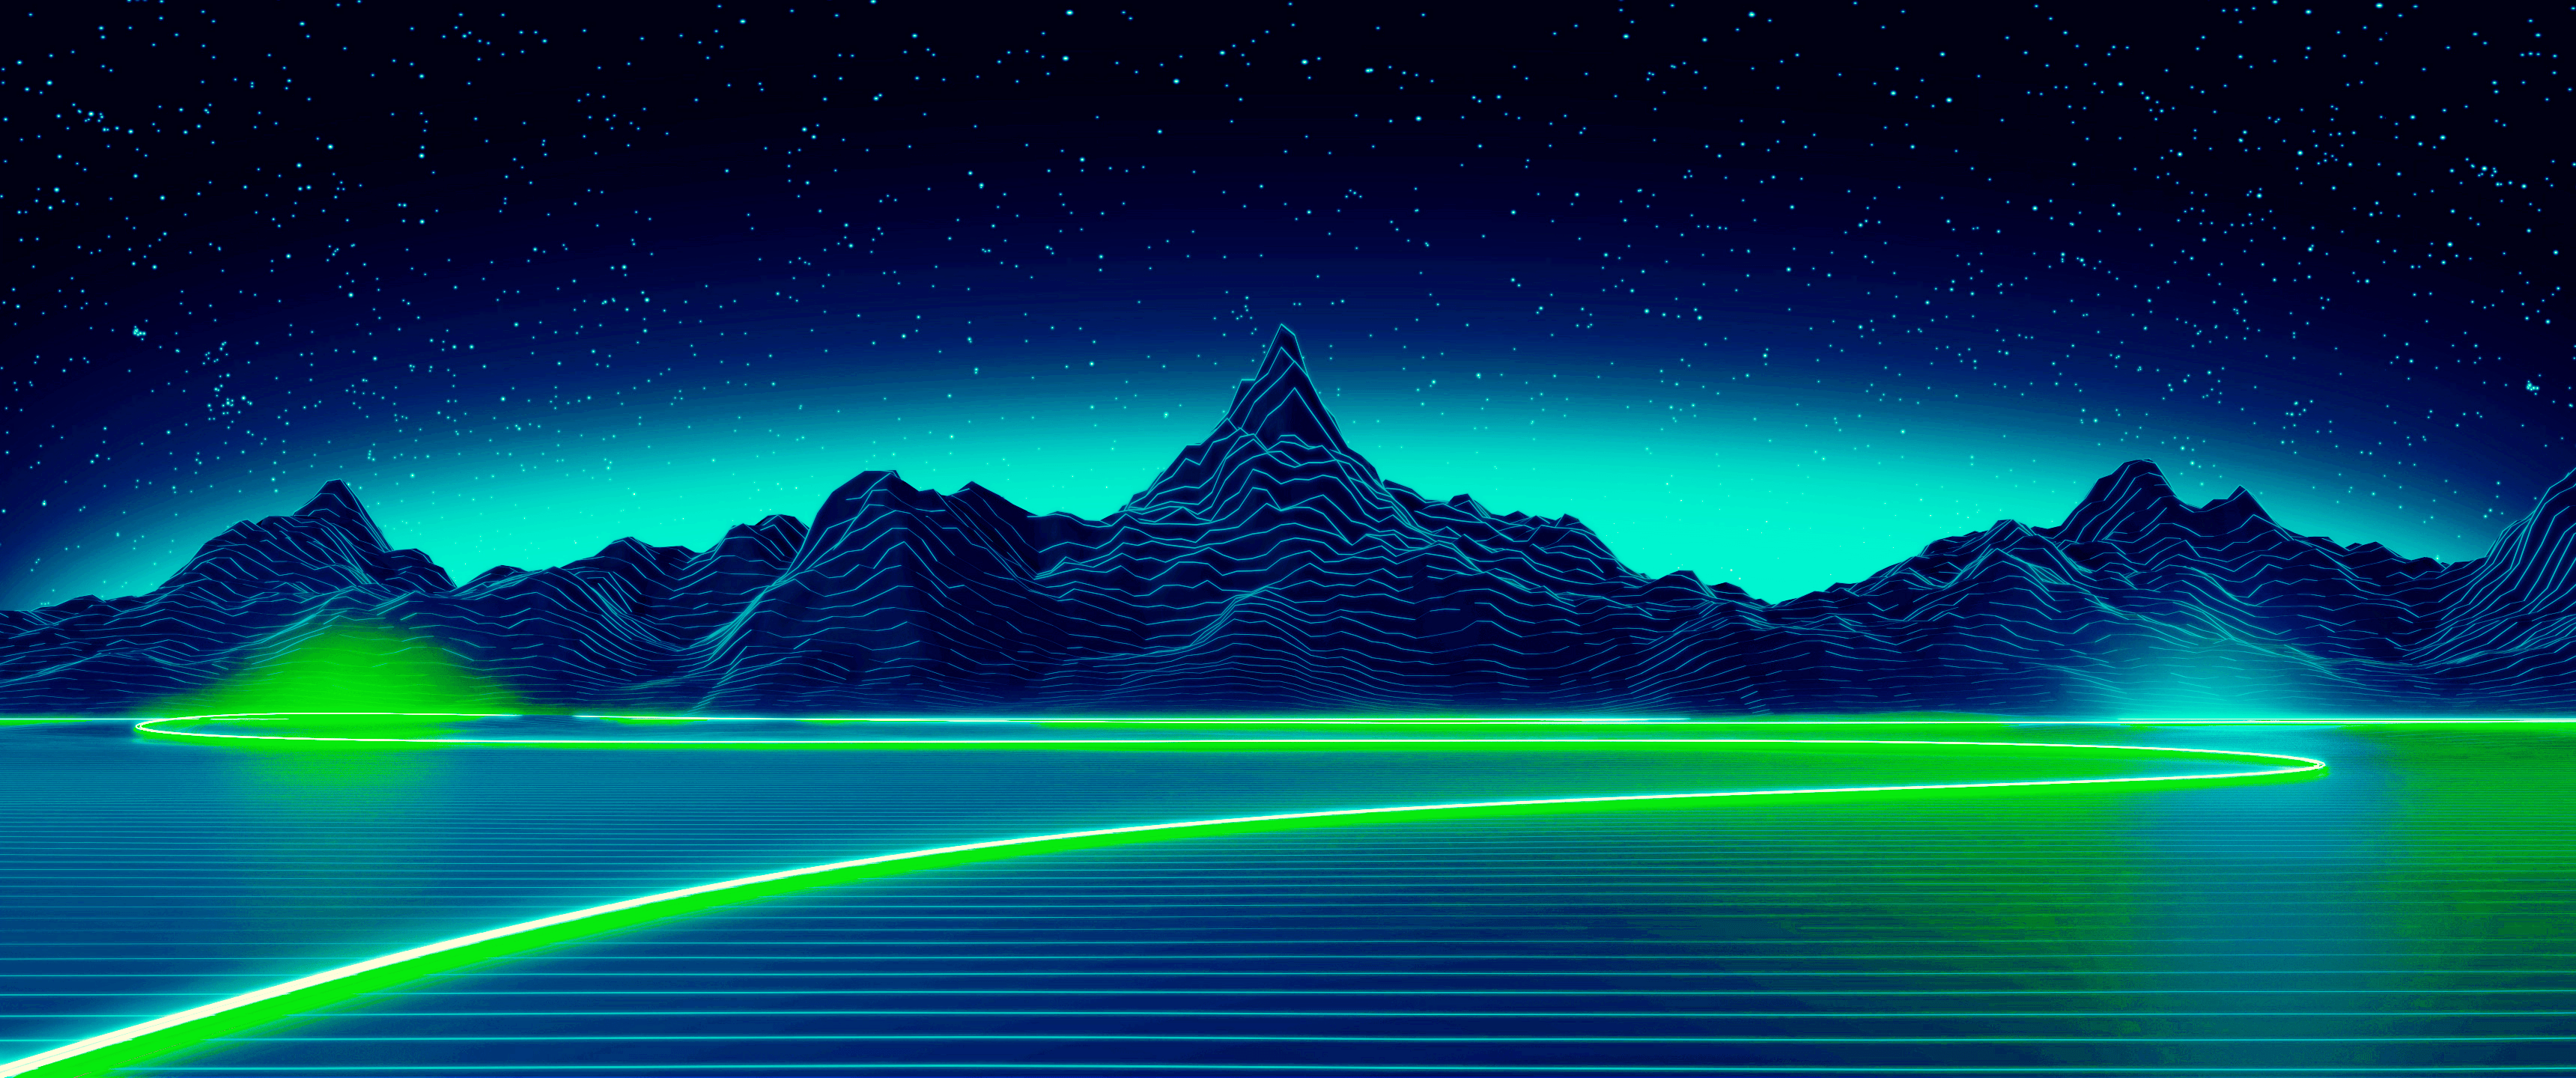 3440X1440 Wallpapers - Top Free 3440X1440 Backgrounds ...